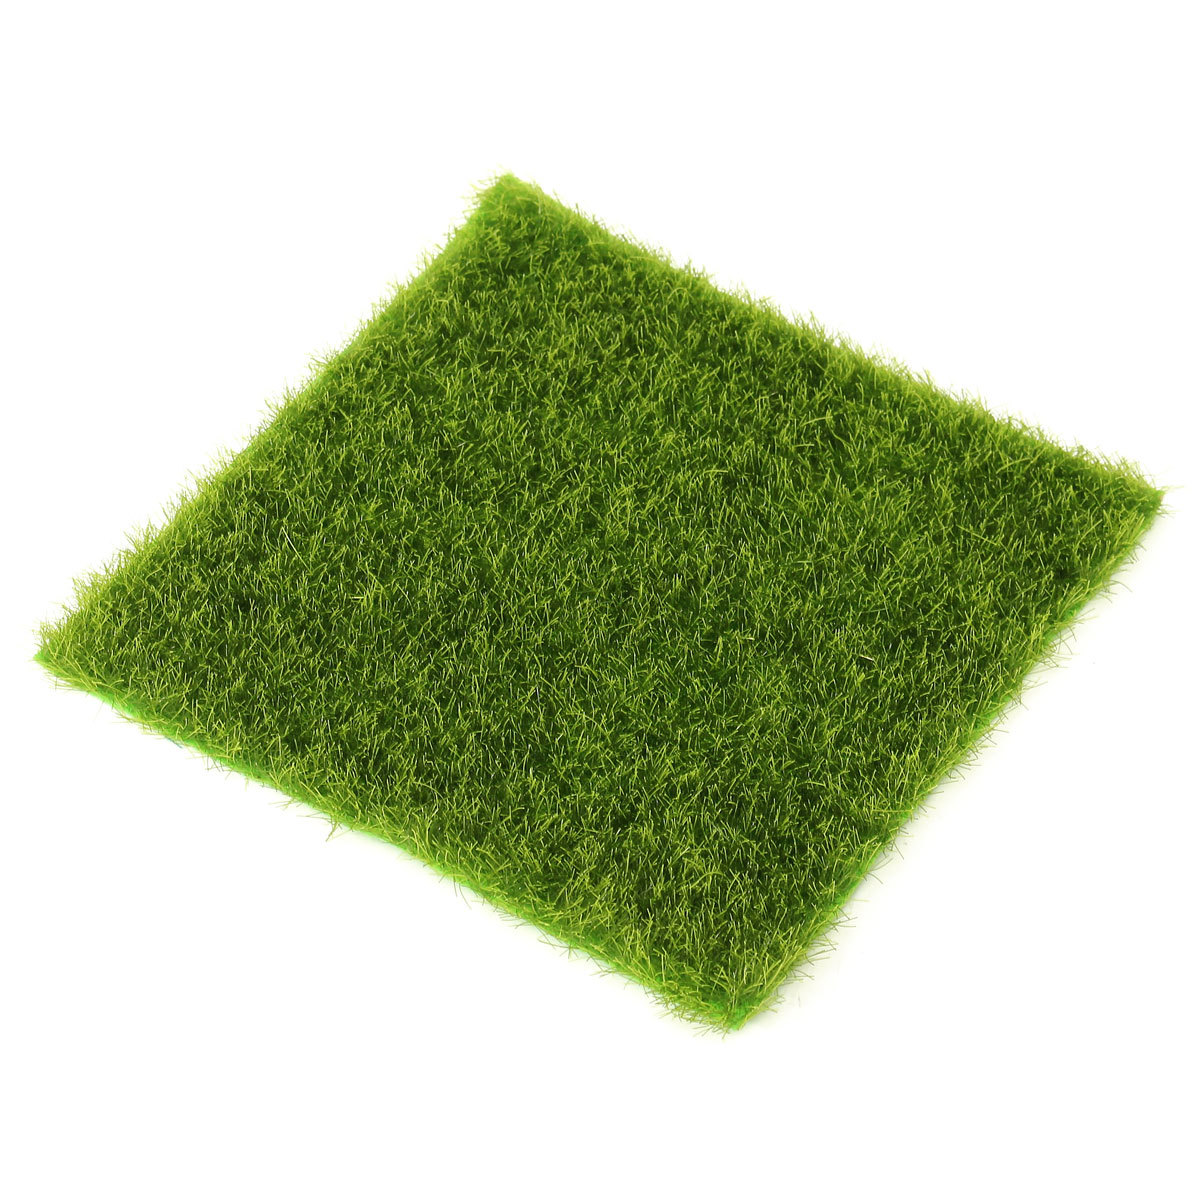 Moss artificial grass synthetic lawn aquarium landscape for Faux grass for crafts